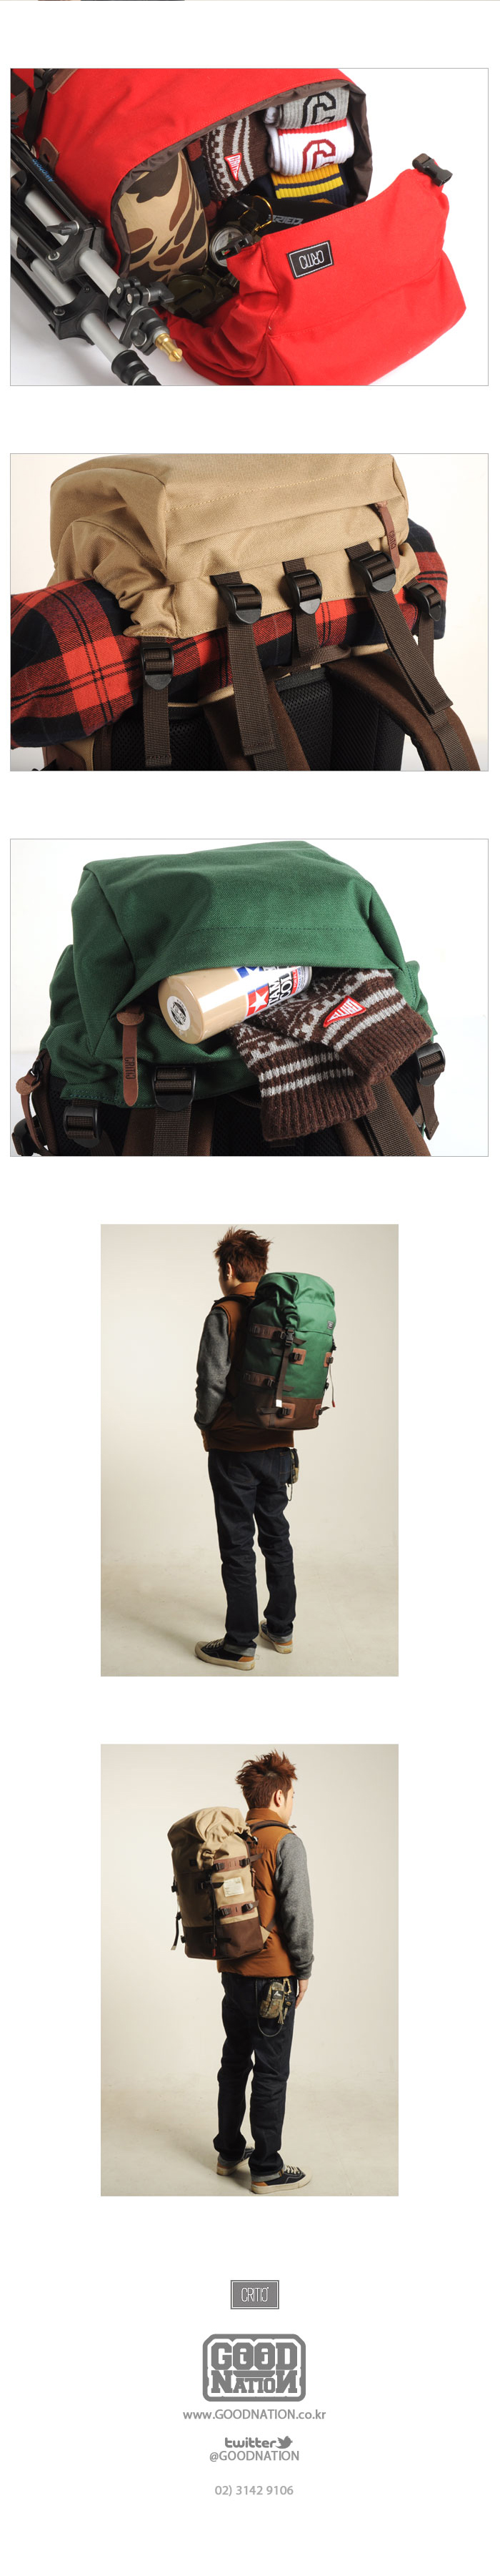 Critic [CRITIC] 2012 Backpack line up ~! 발매 소식!